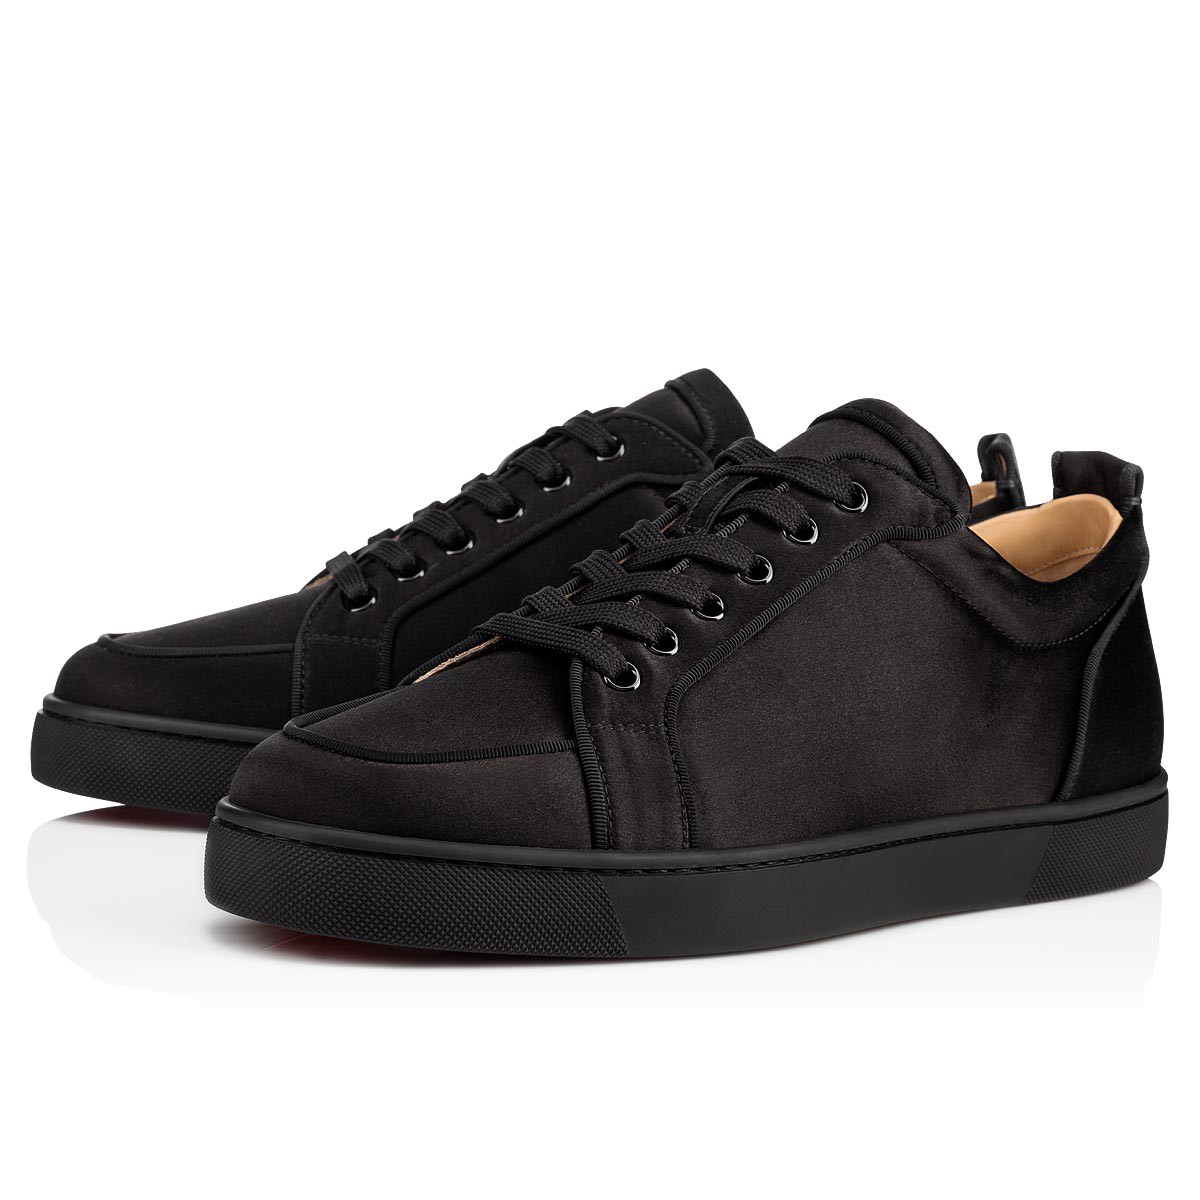 7c0bc8913e3 ... iconic Rantulow Orlato low-top sneakers with this version made from  violet satin. These rounded-toe sneakers adjust with laces.